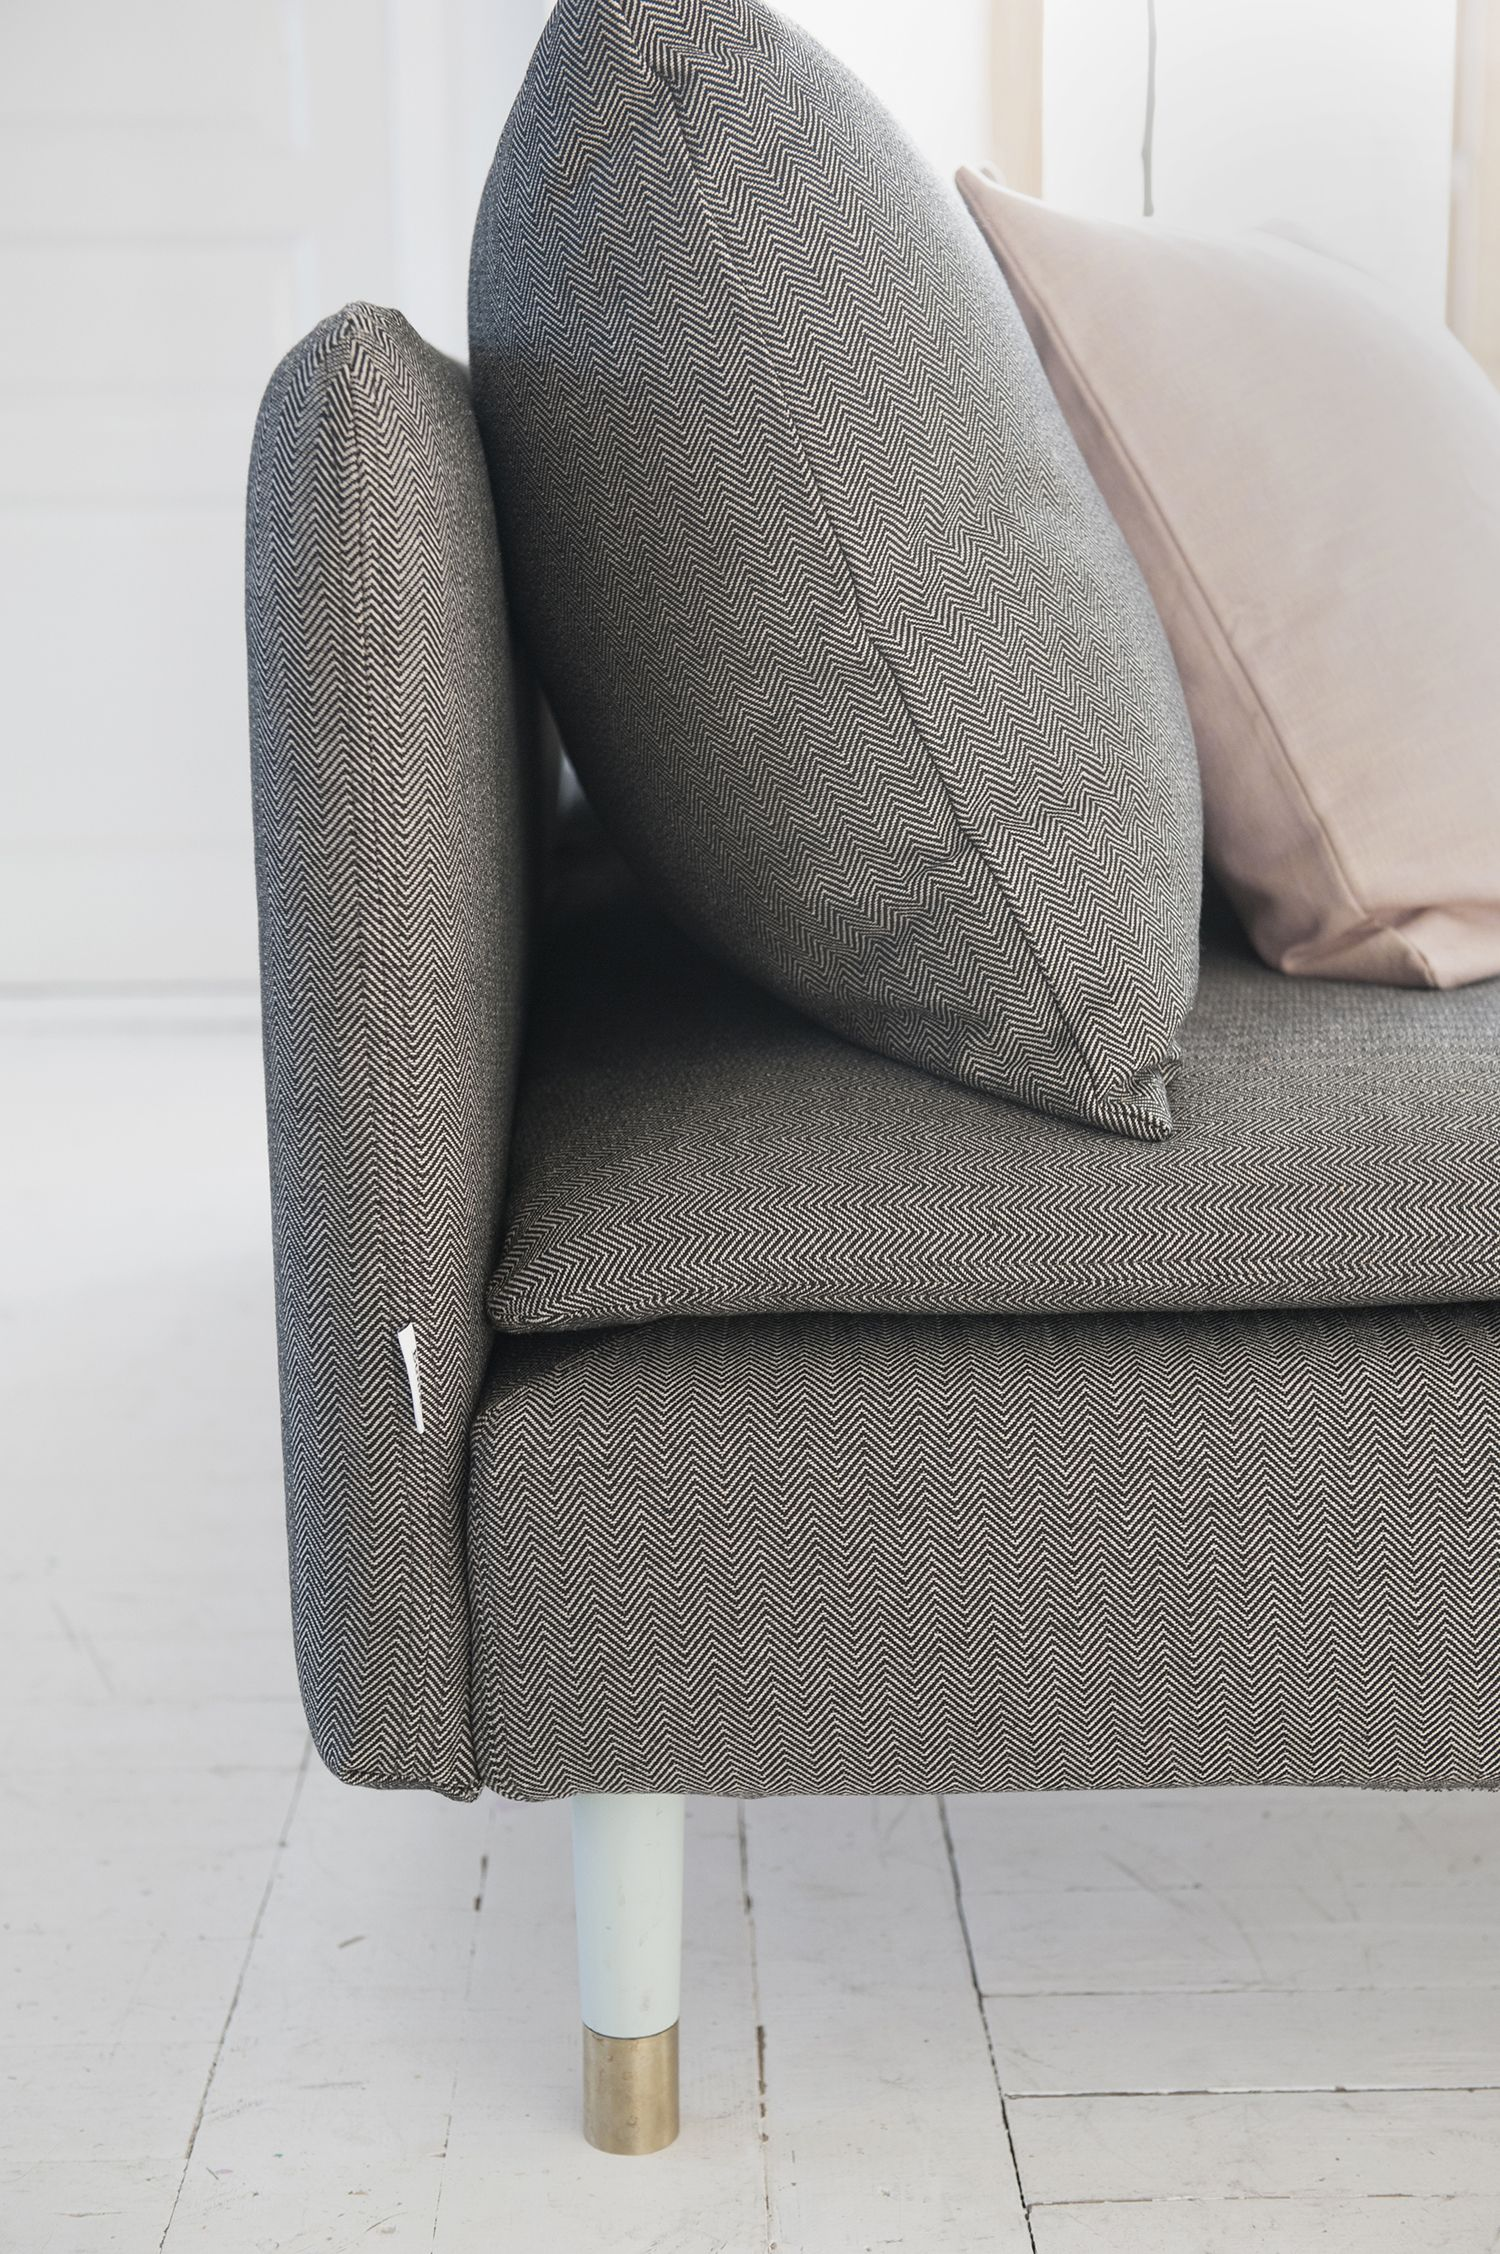 Classic Grey Soderhamn 3 Seater Sofa Cover In Coffee Sand Beige Briken Herringbone Available Feb 2015 Cushion Cover In Rose Teg Vardagsrum Soffa Inredning